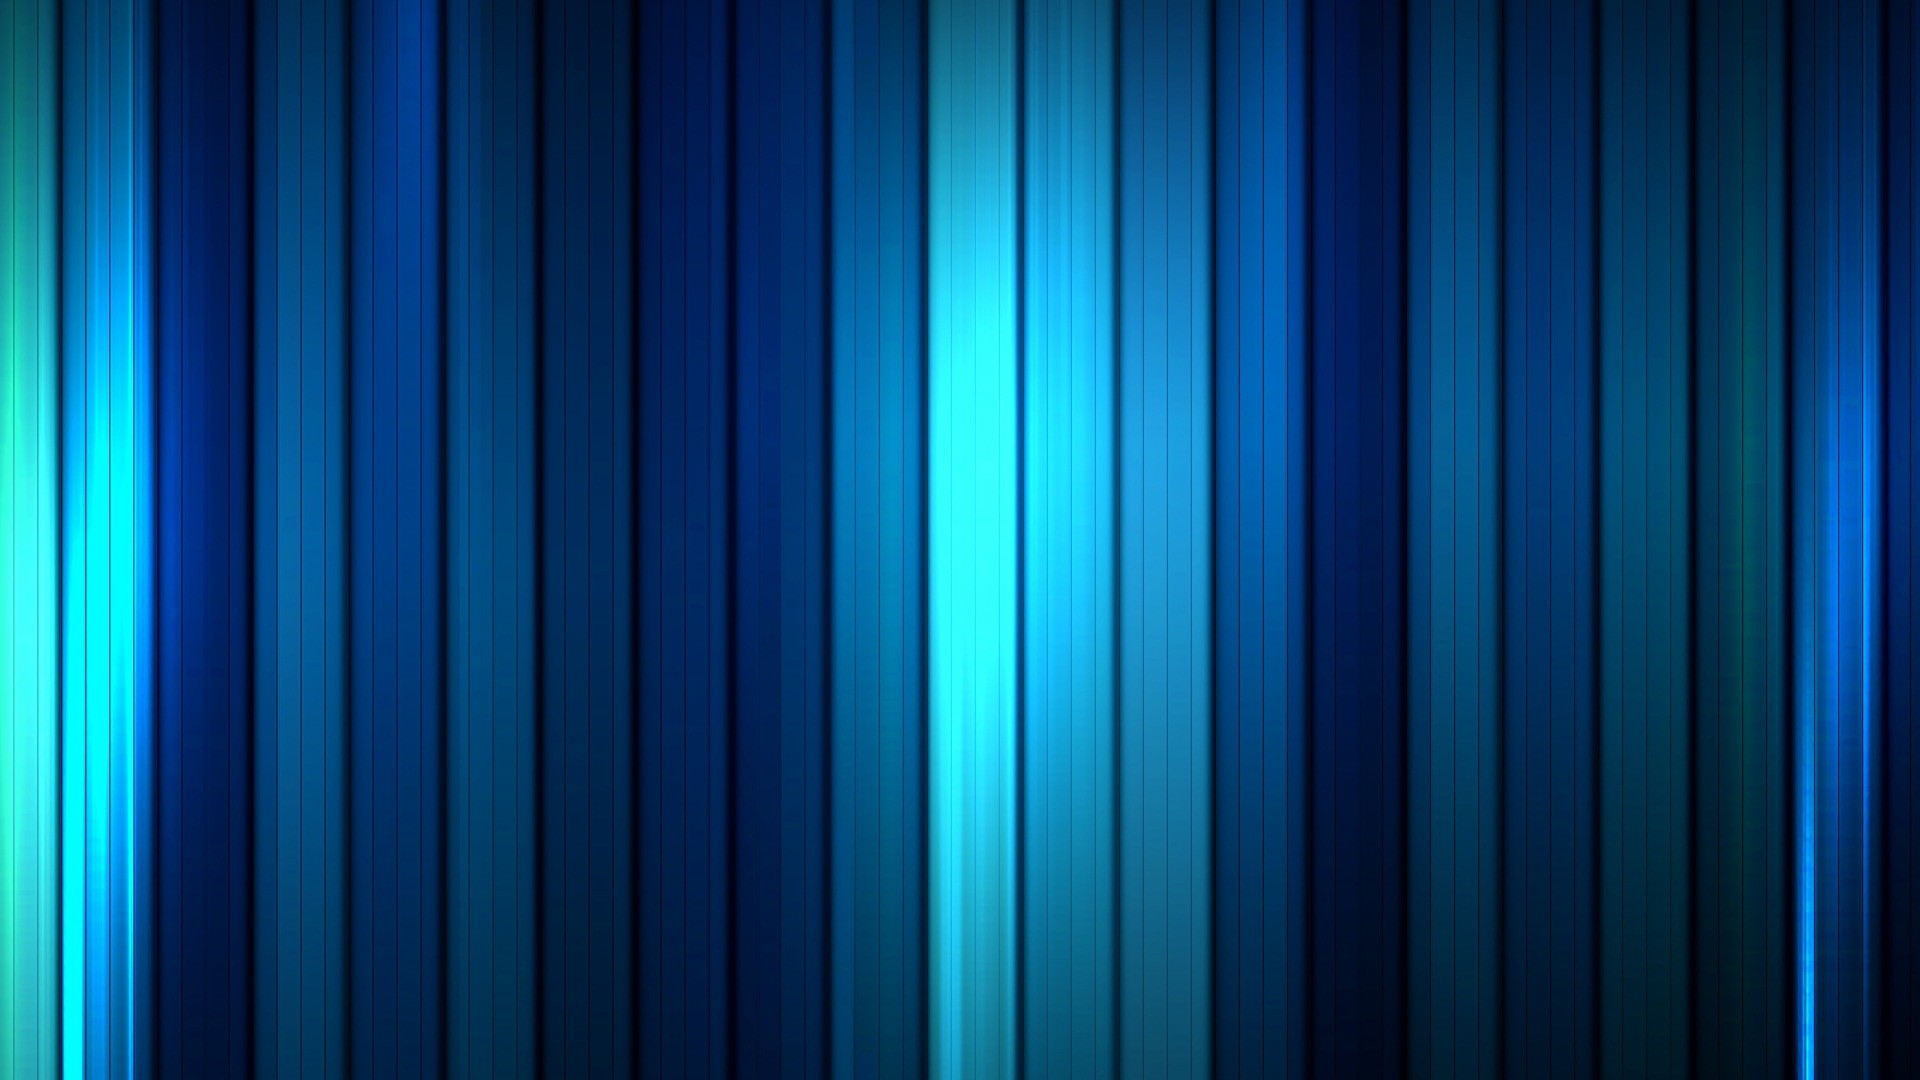 Navy blue wallpapers for Navy blue wallpaper for walls